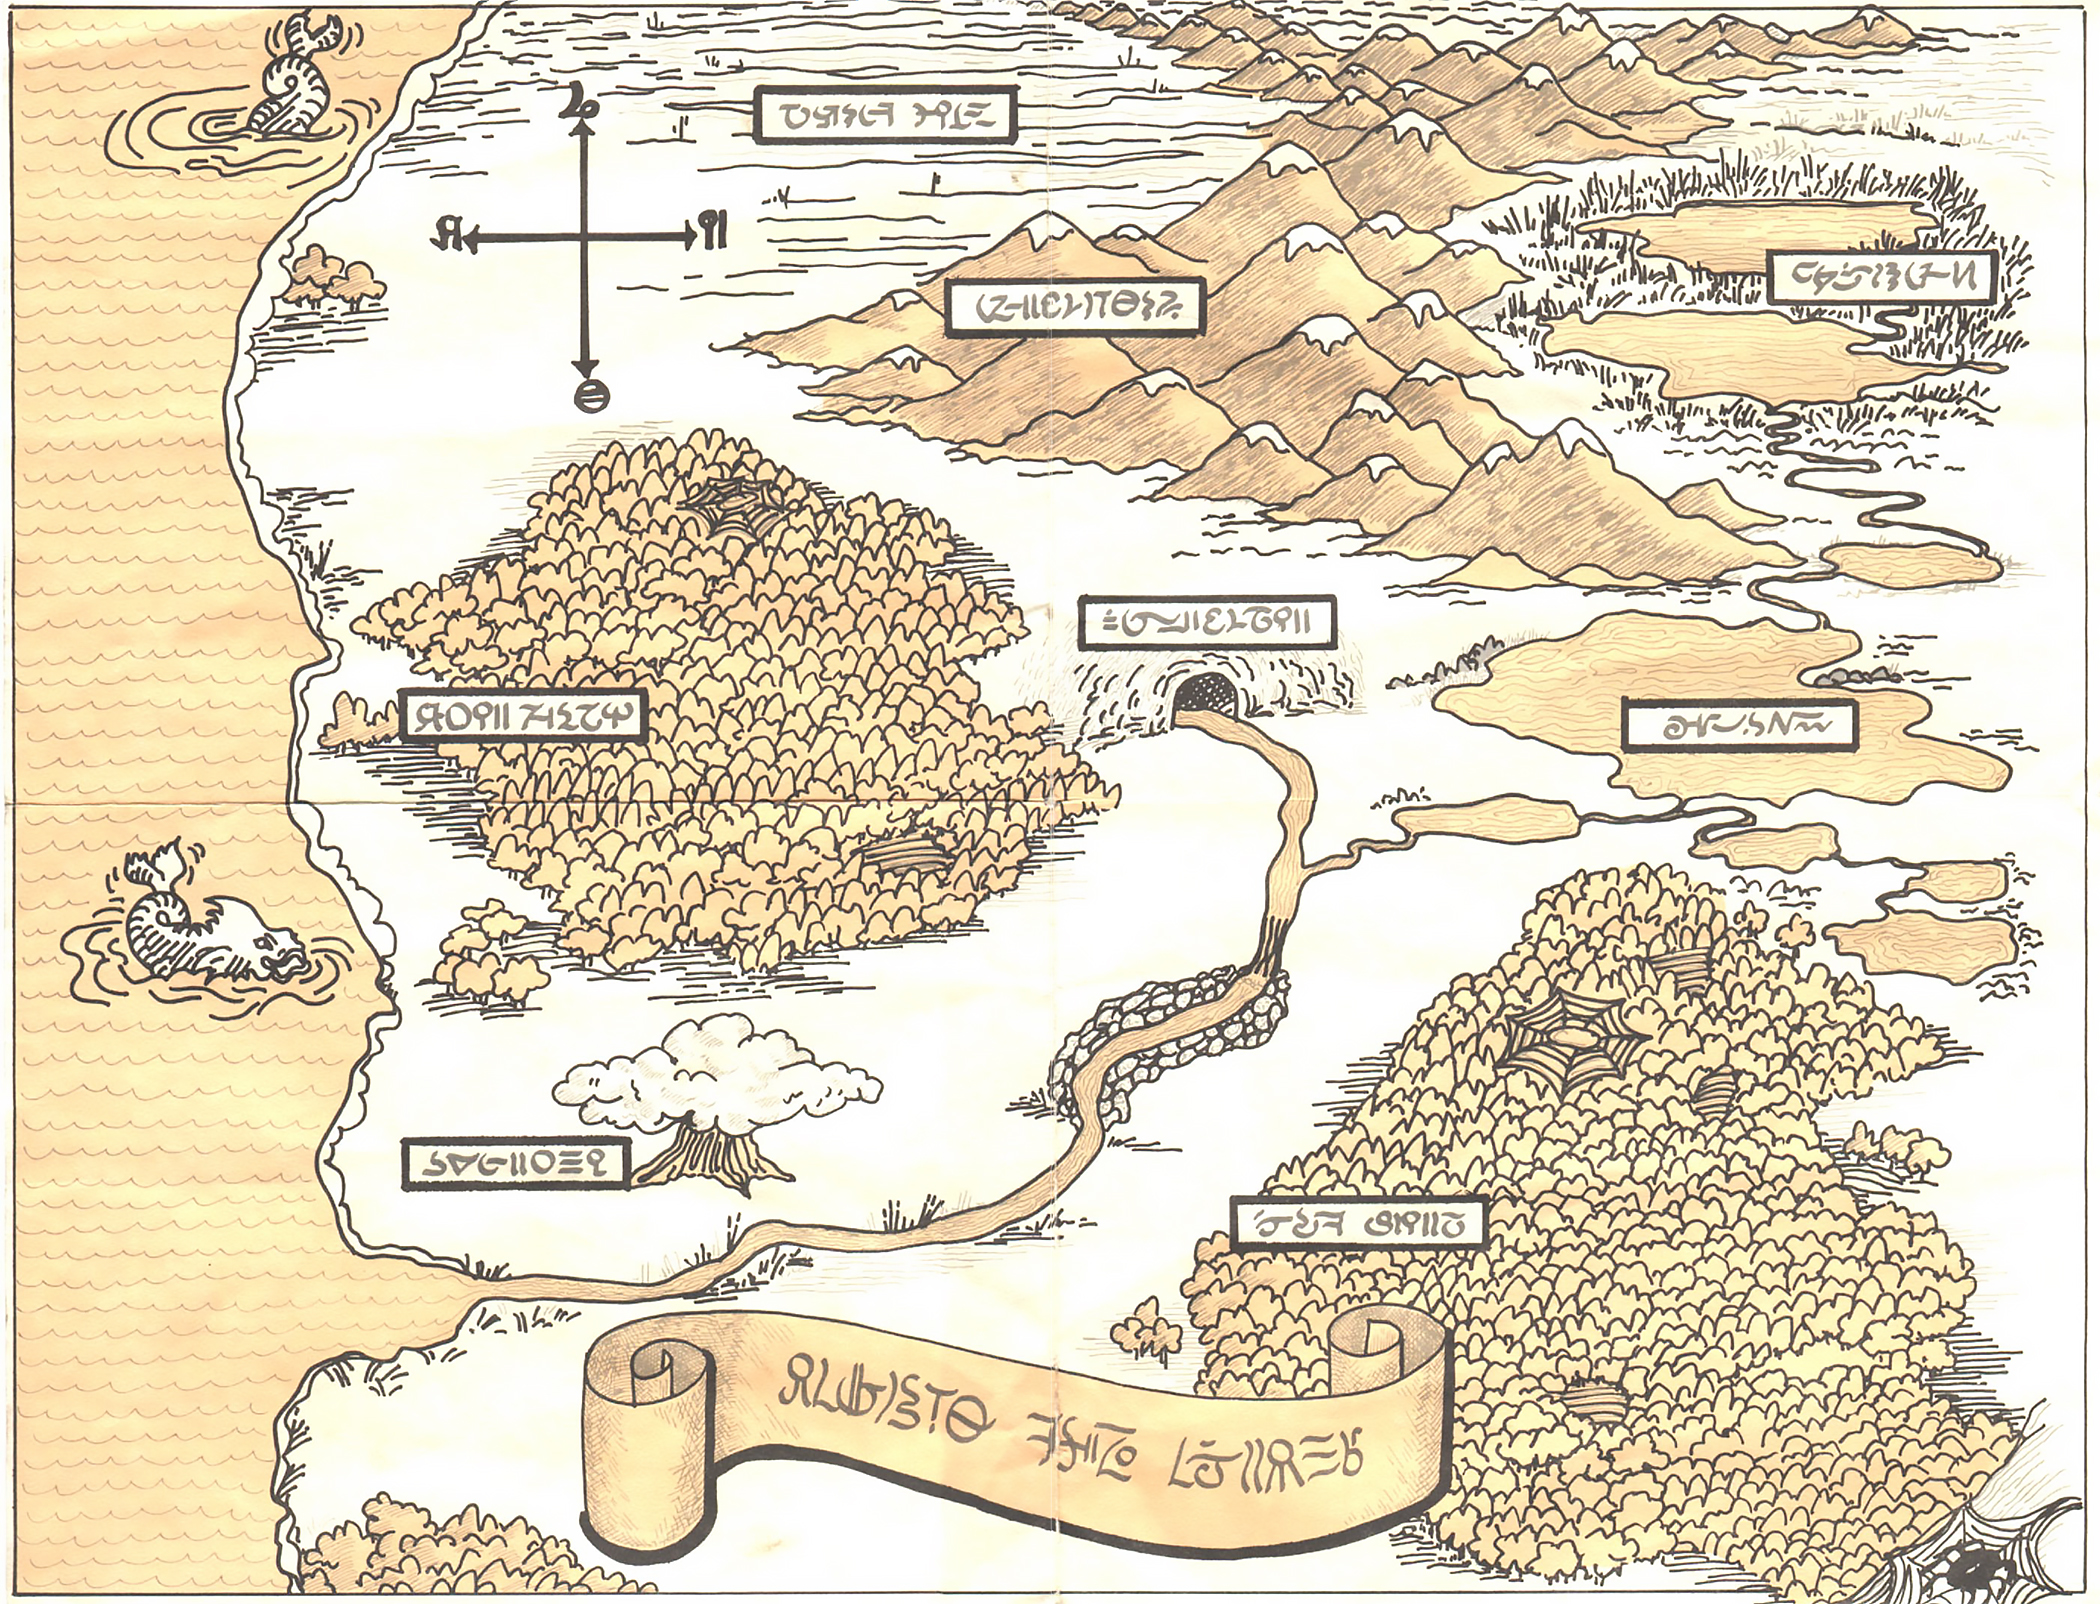 Map from packaging for Zork I, a computer adventure game by Infocom